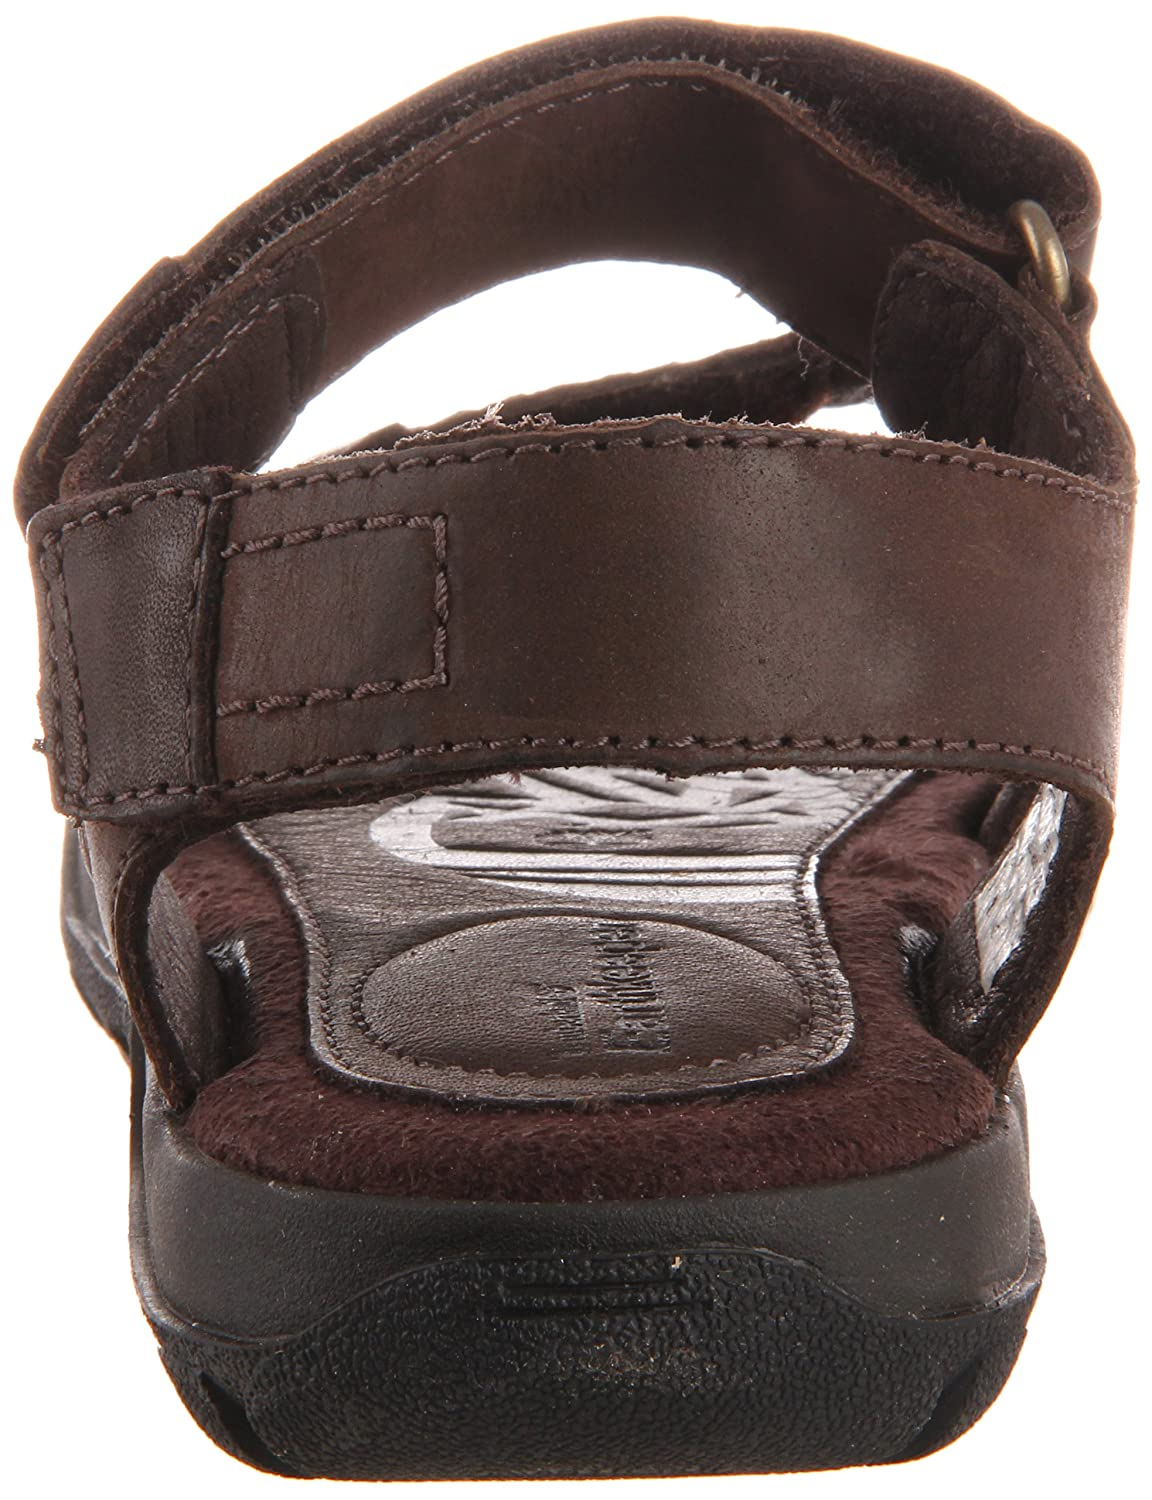 Amazon.com | Timberland Pirates Cove 3 Strap Sandal (Toddler/Little Kid/Big Kid), Brown, 7 M US Toddler | Sandals